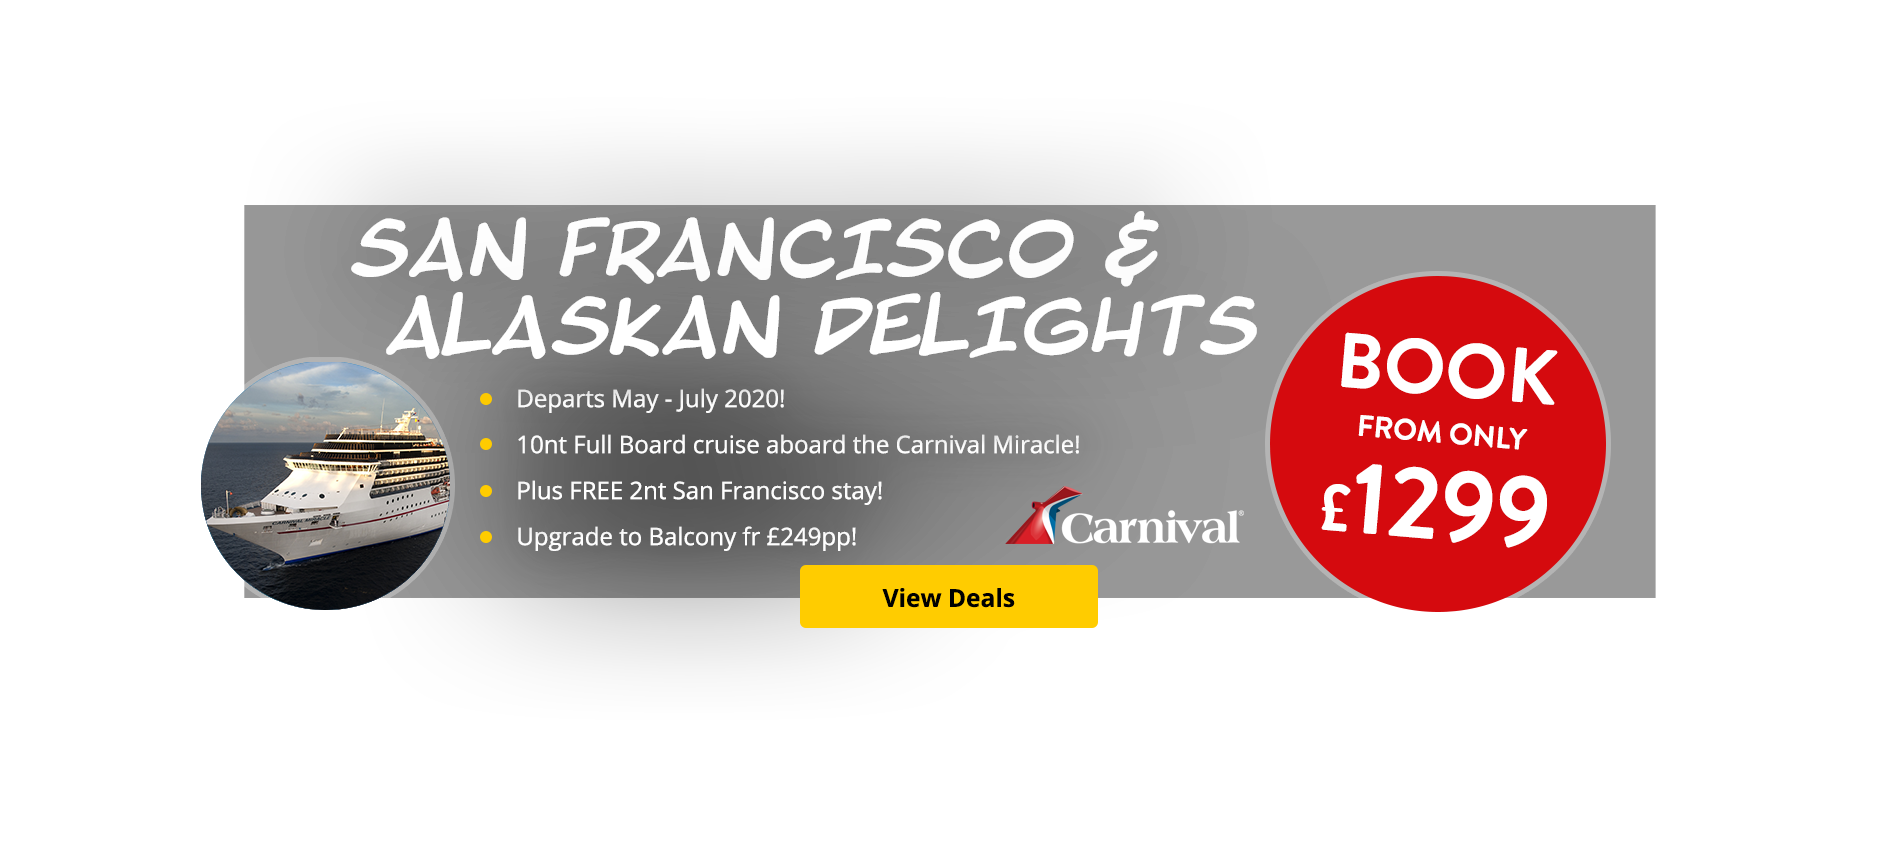 Departs May - July 2020! 10nt Full Board cruise aboard the Carnival Miracle! Plus FREE 2nt San Francisco stay! Upgrade to Balcony fr £249pp!